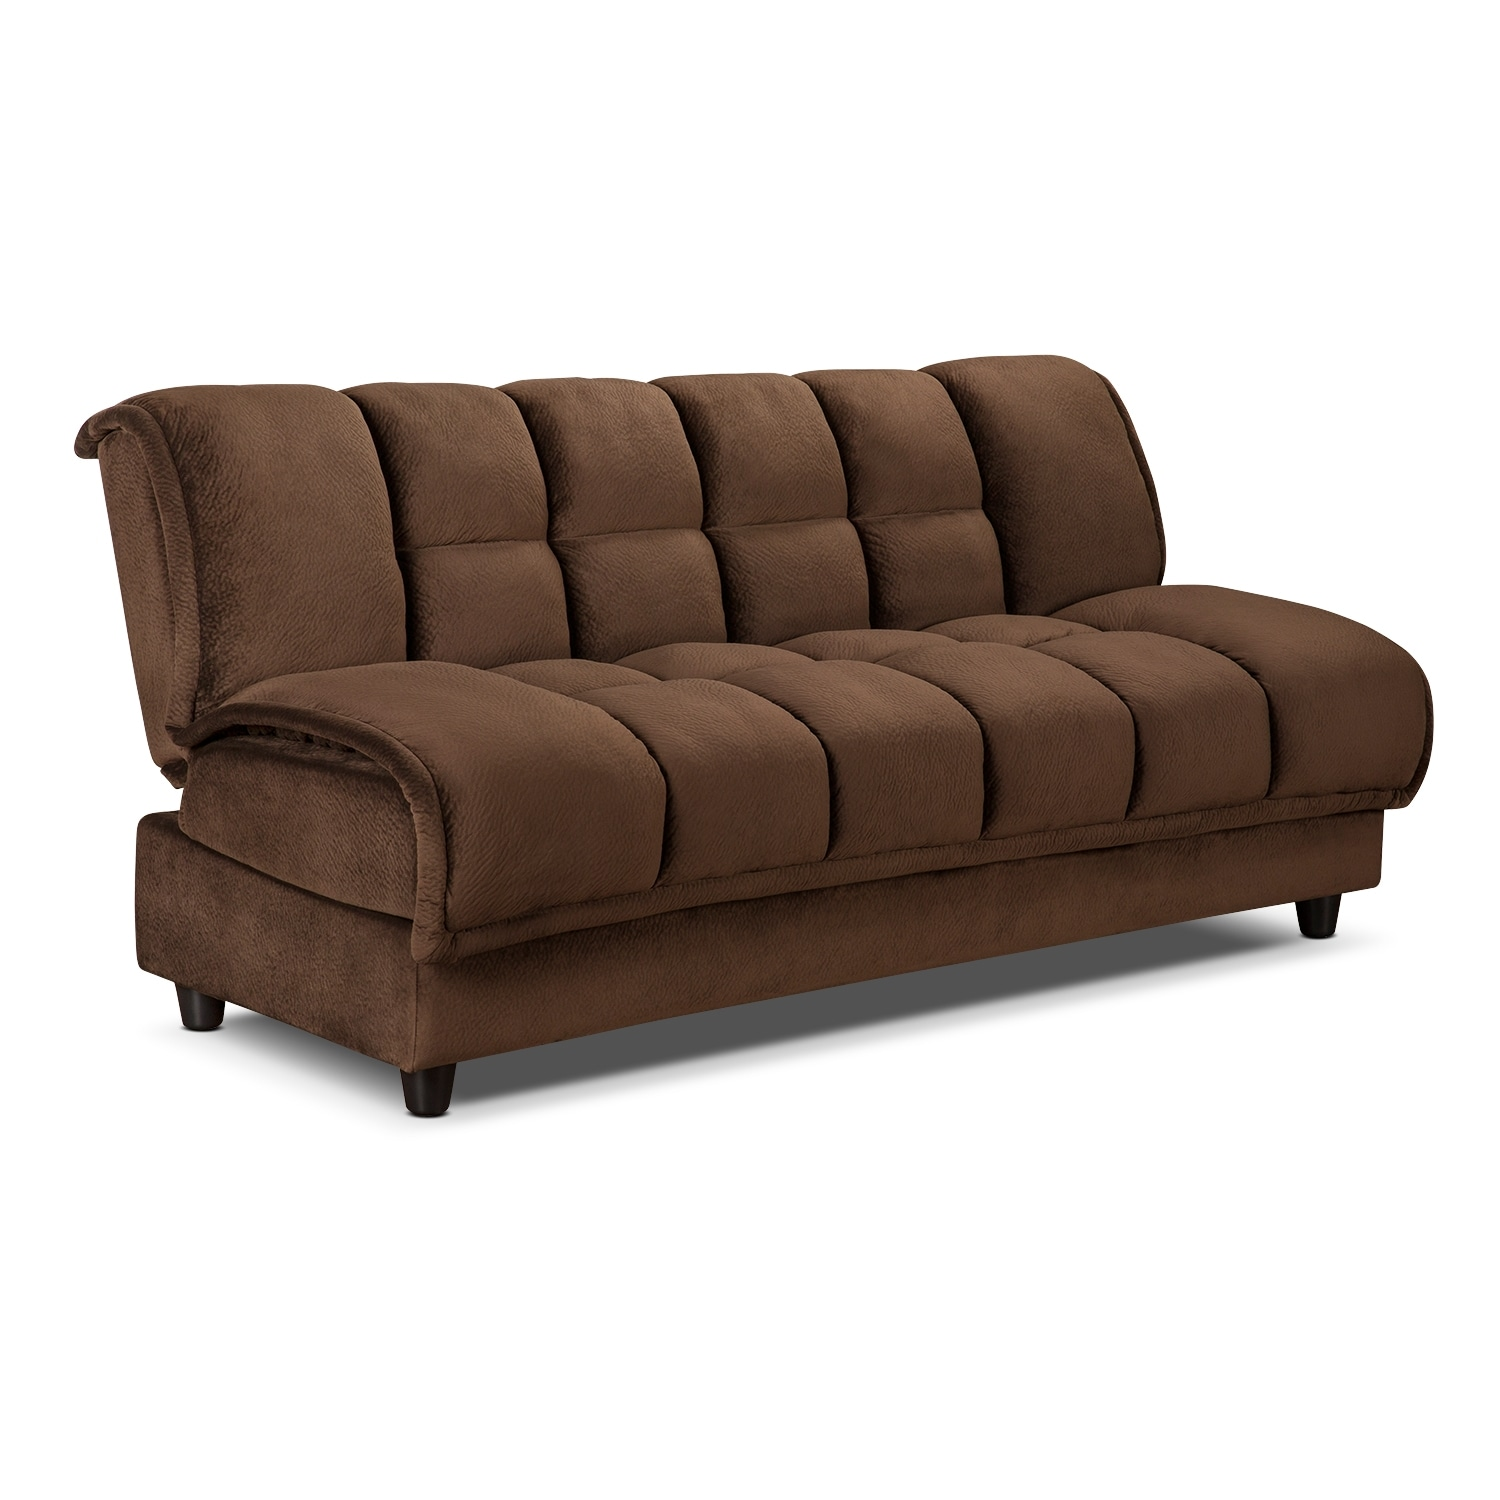 Bennett futon sofa bed espresso american signature for Furniture furniture